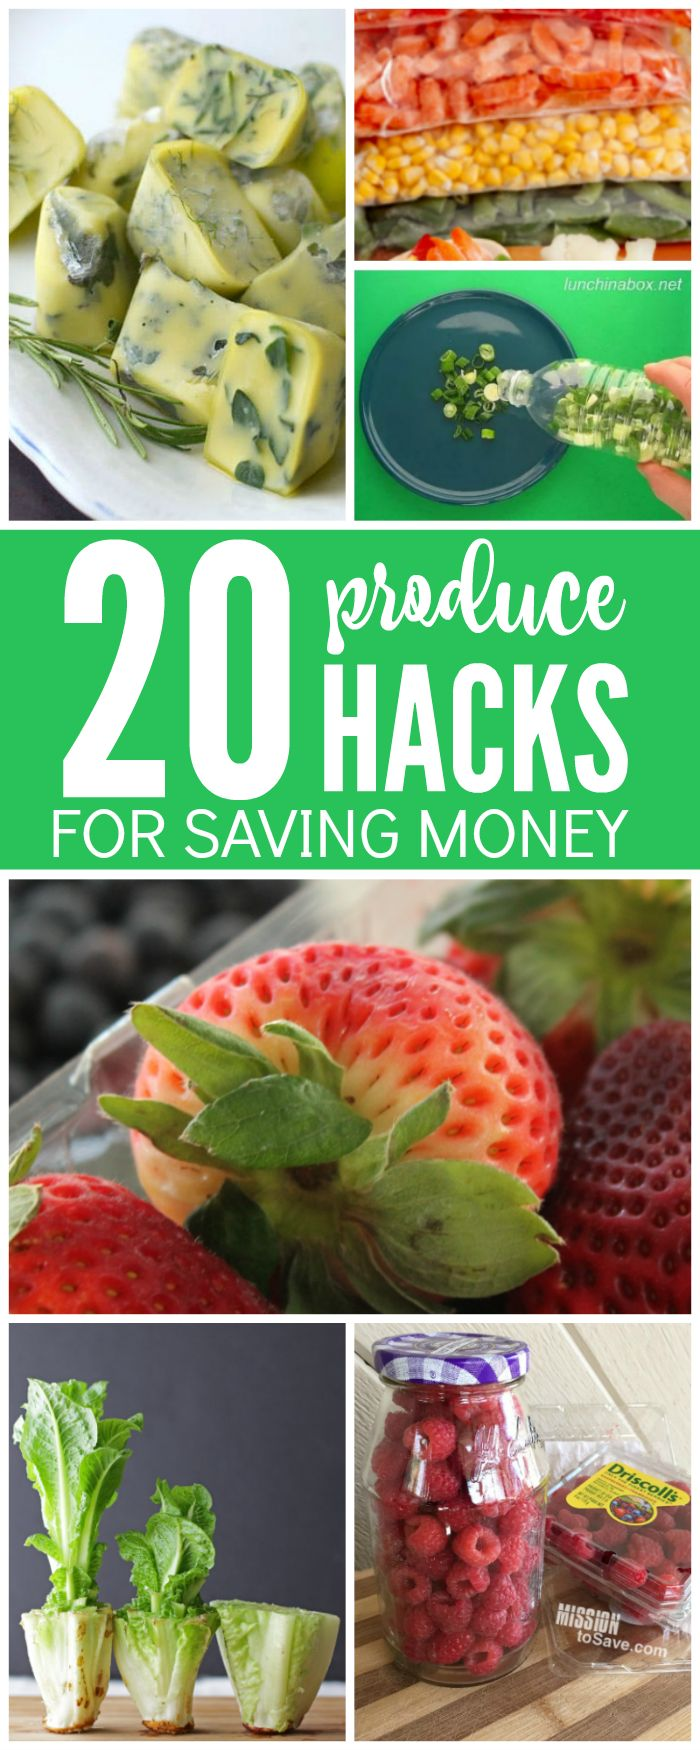 Check out these Top 20 Produce Hacks for Saving Money today! You will love these great hacks, you can save your produce for longer and spend less money on it!